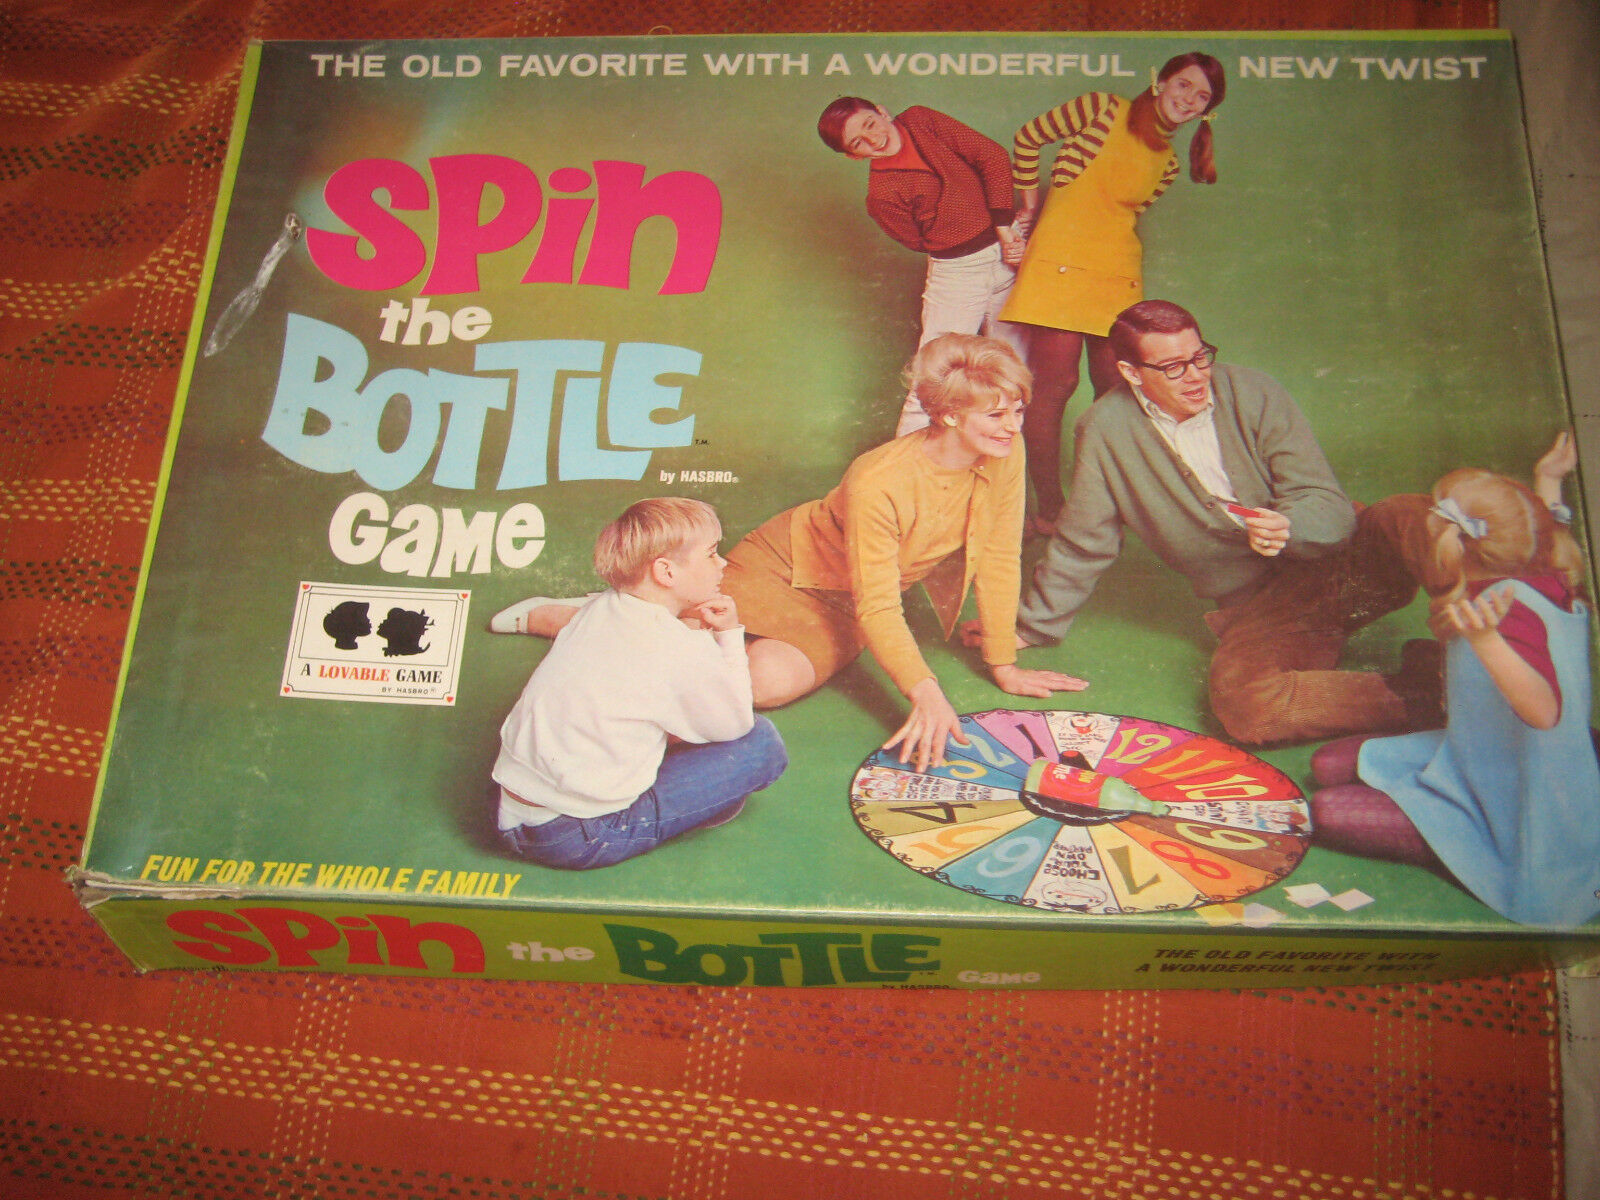 1968 Hasbro Spin The bottle Game Complete